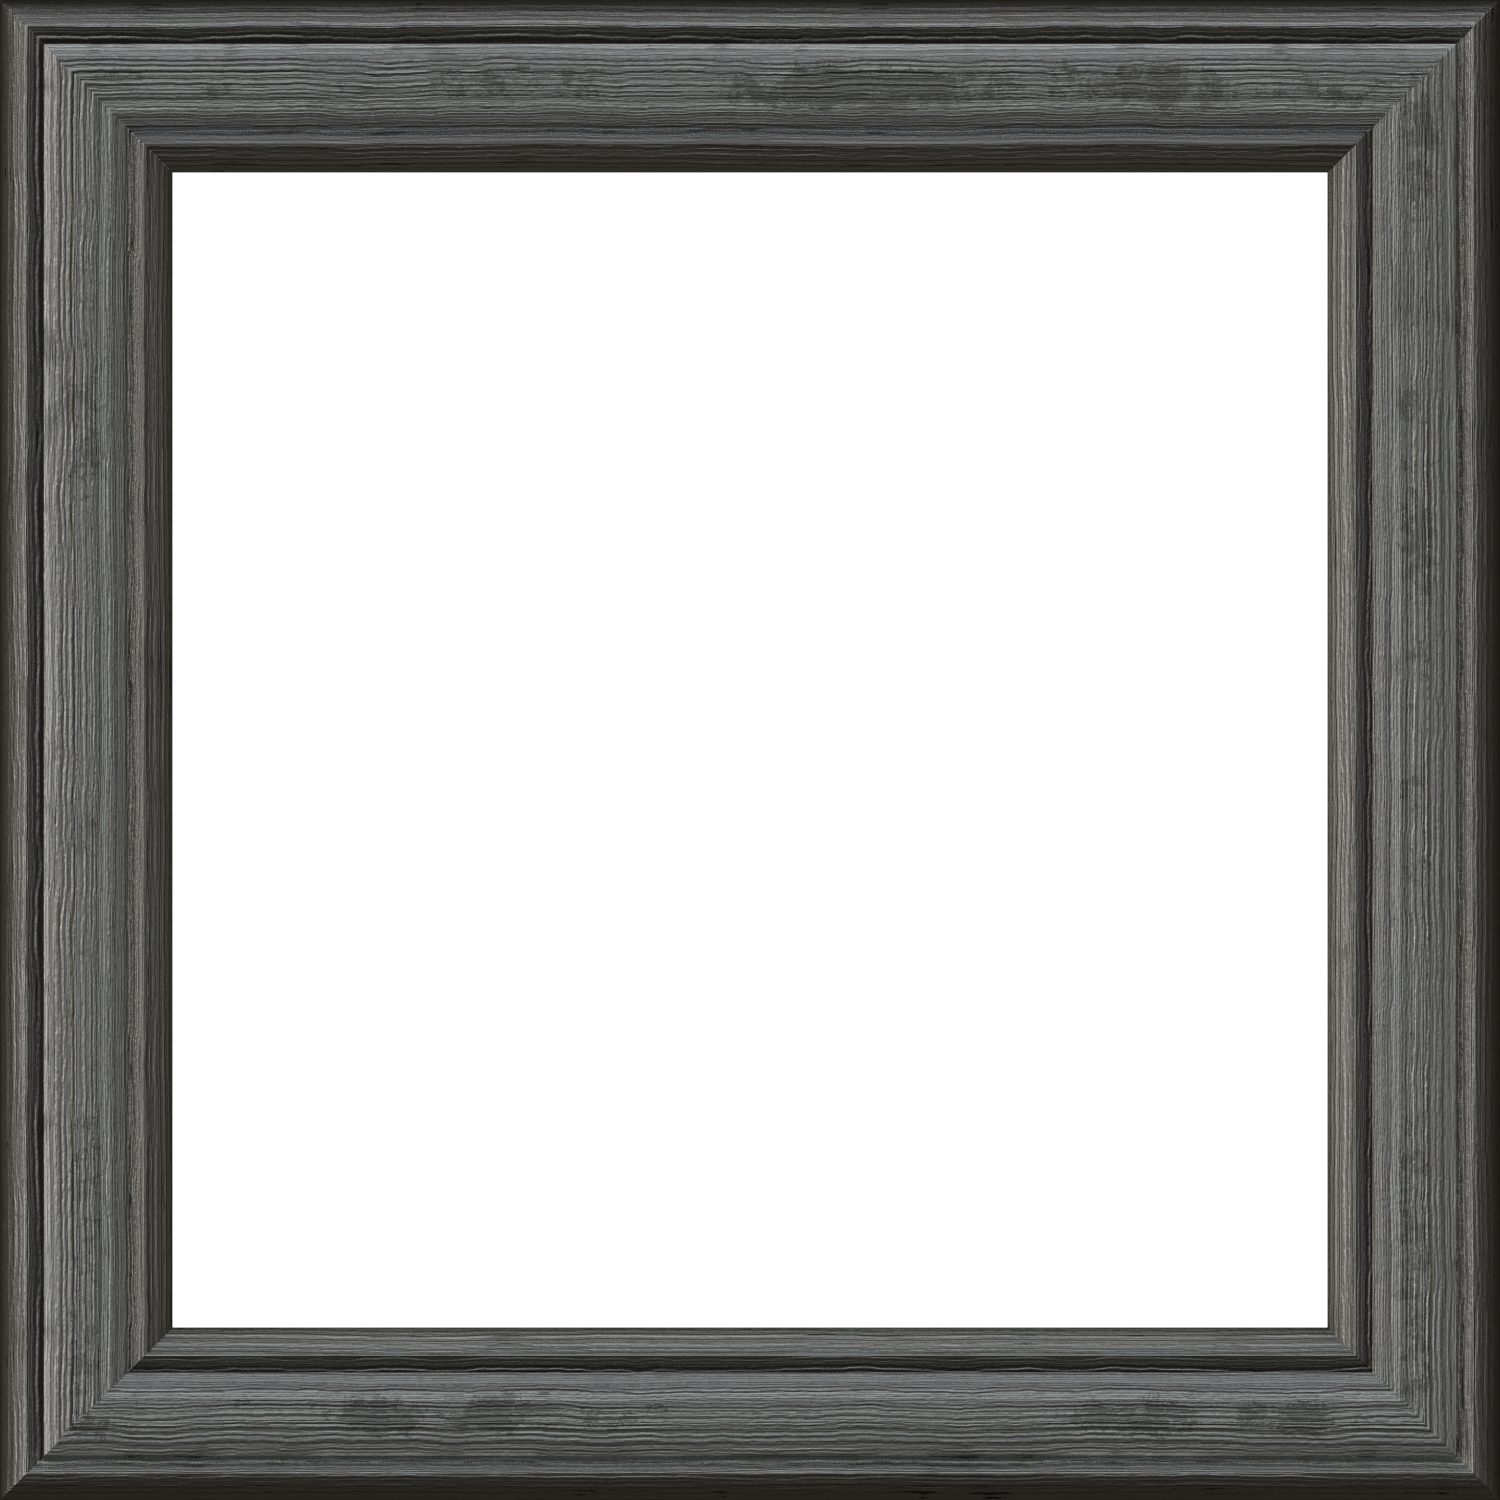 Rustic wood frame png. Grey picture ideas creative